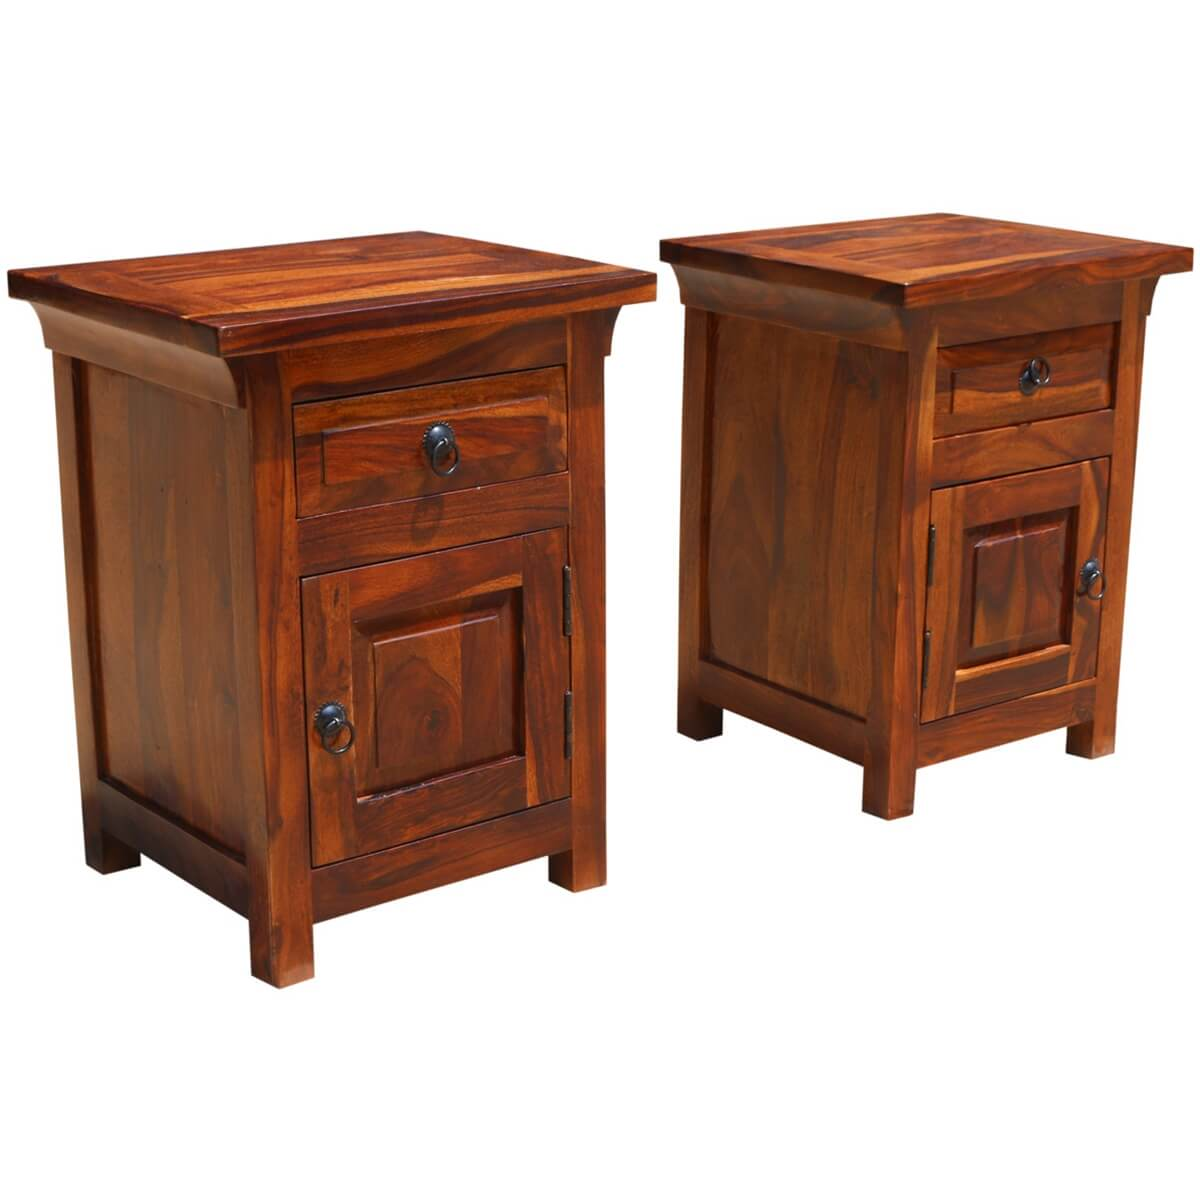 Afton rustic farmhouse solid wood 1 drawer nightstand for Farmhouse end table set